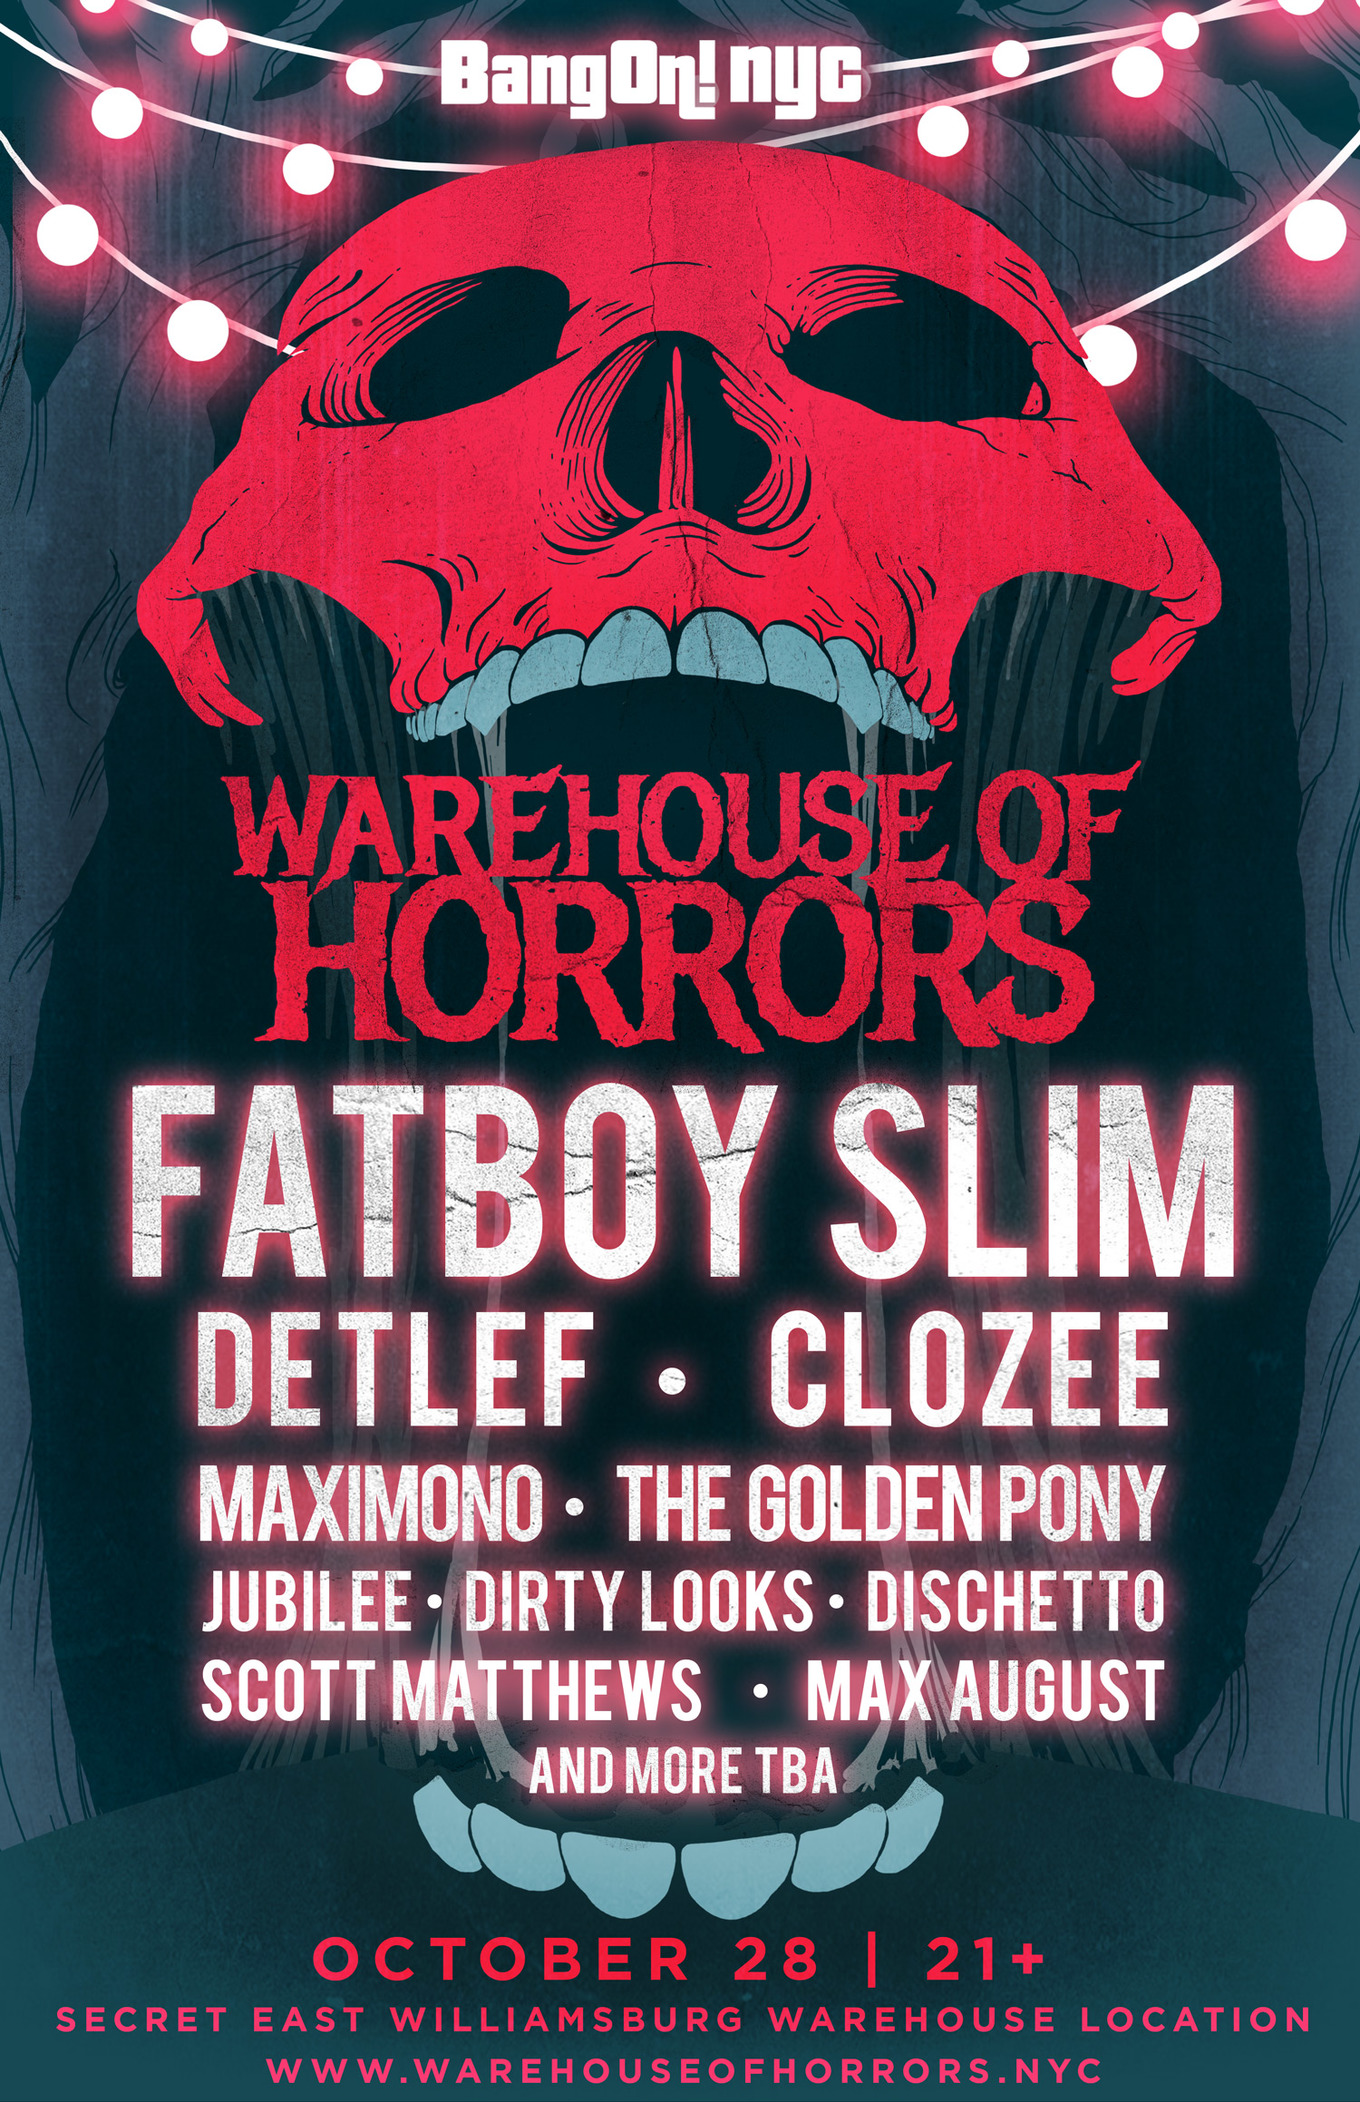 warehouse of horrors | edm identity